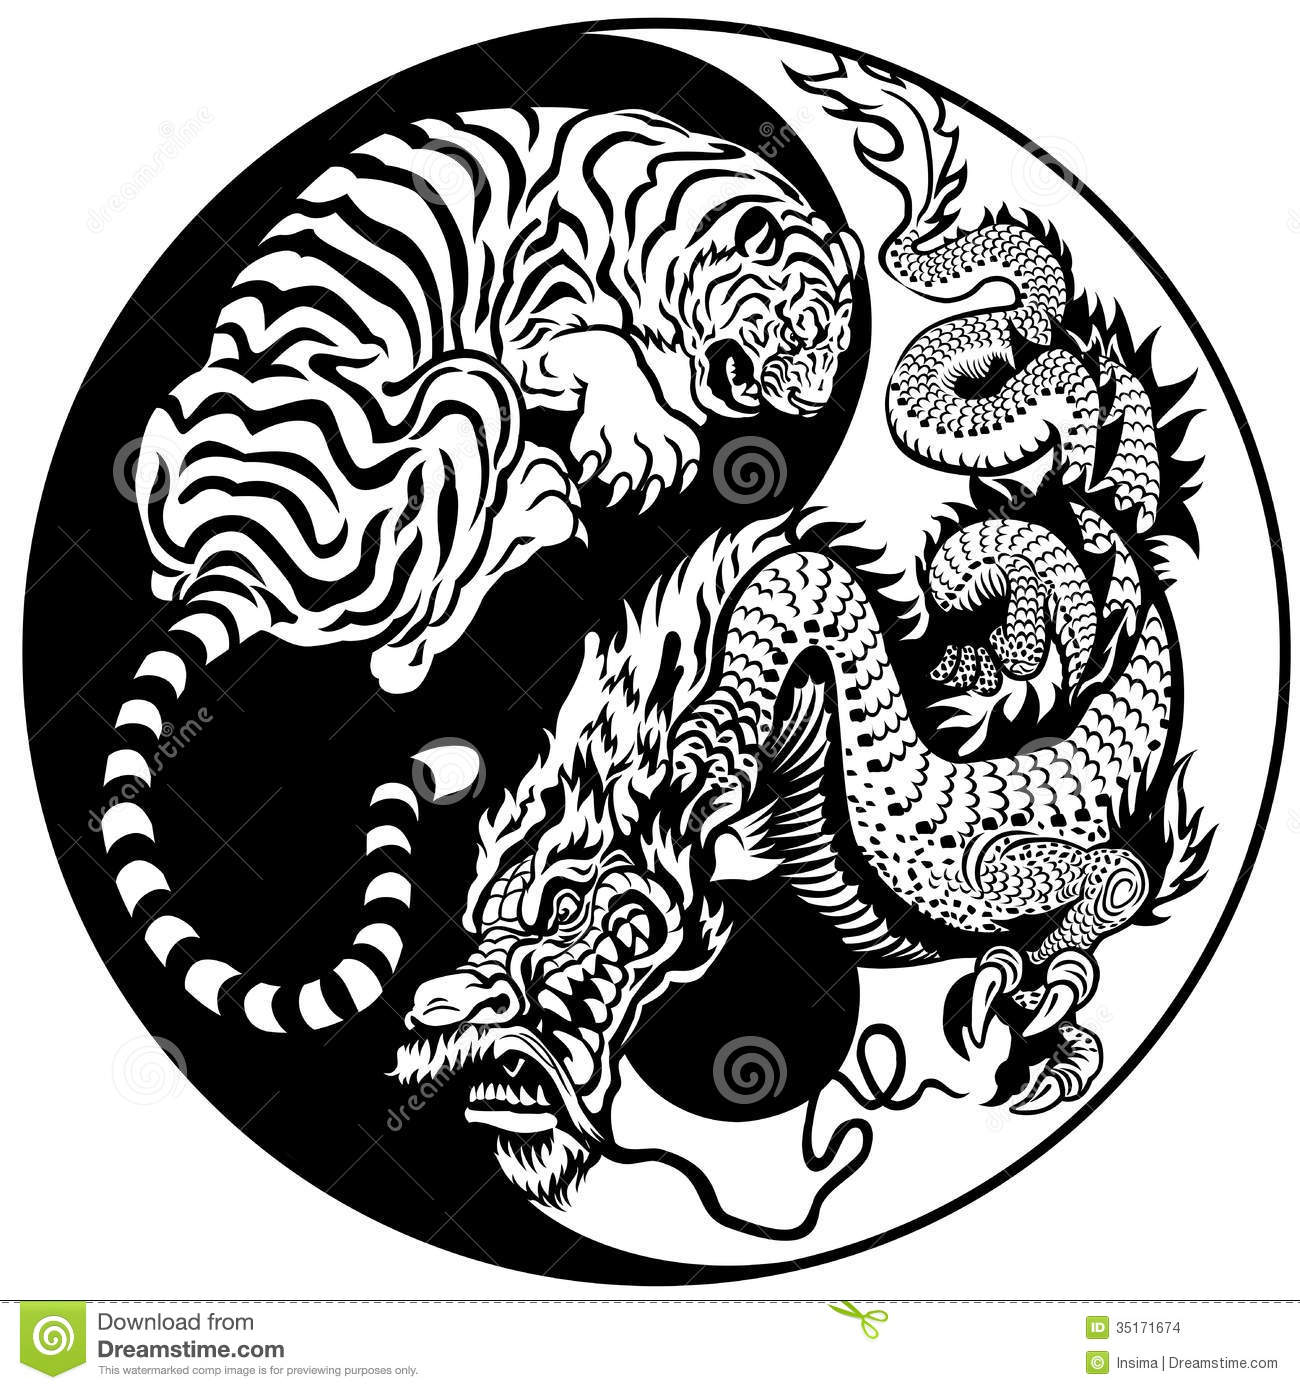 Tiger And Dragon Yin Yang Symbol Stock Images - Image: 35171674